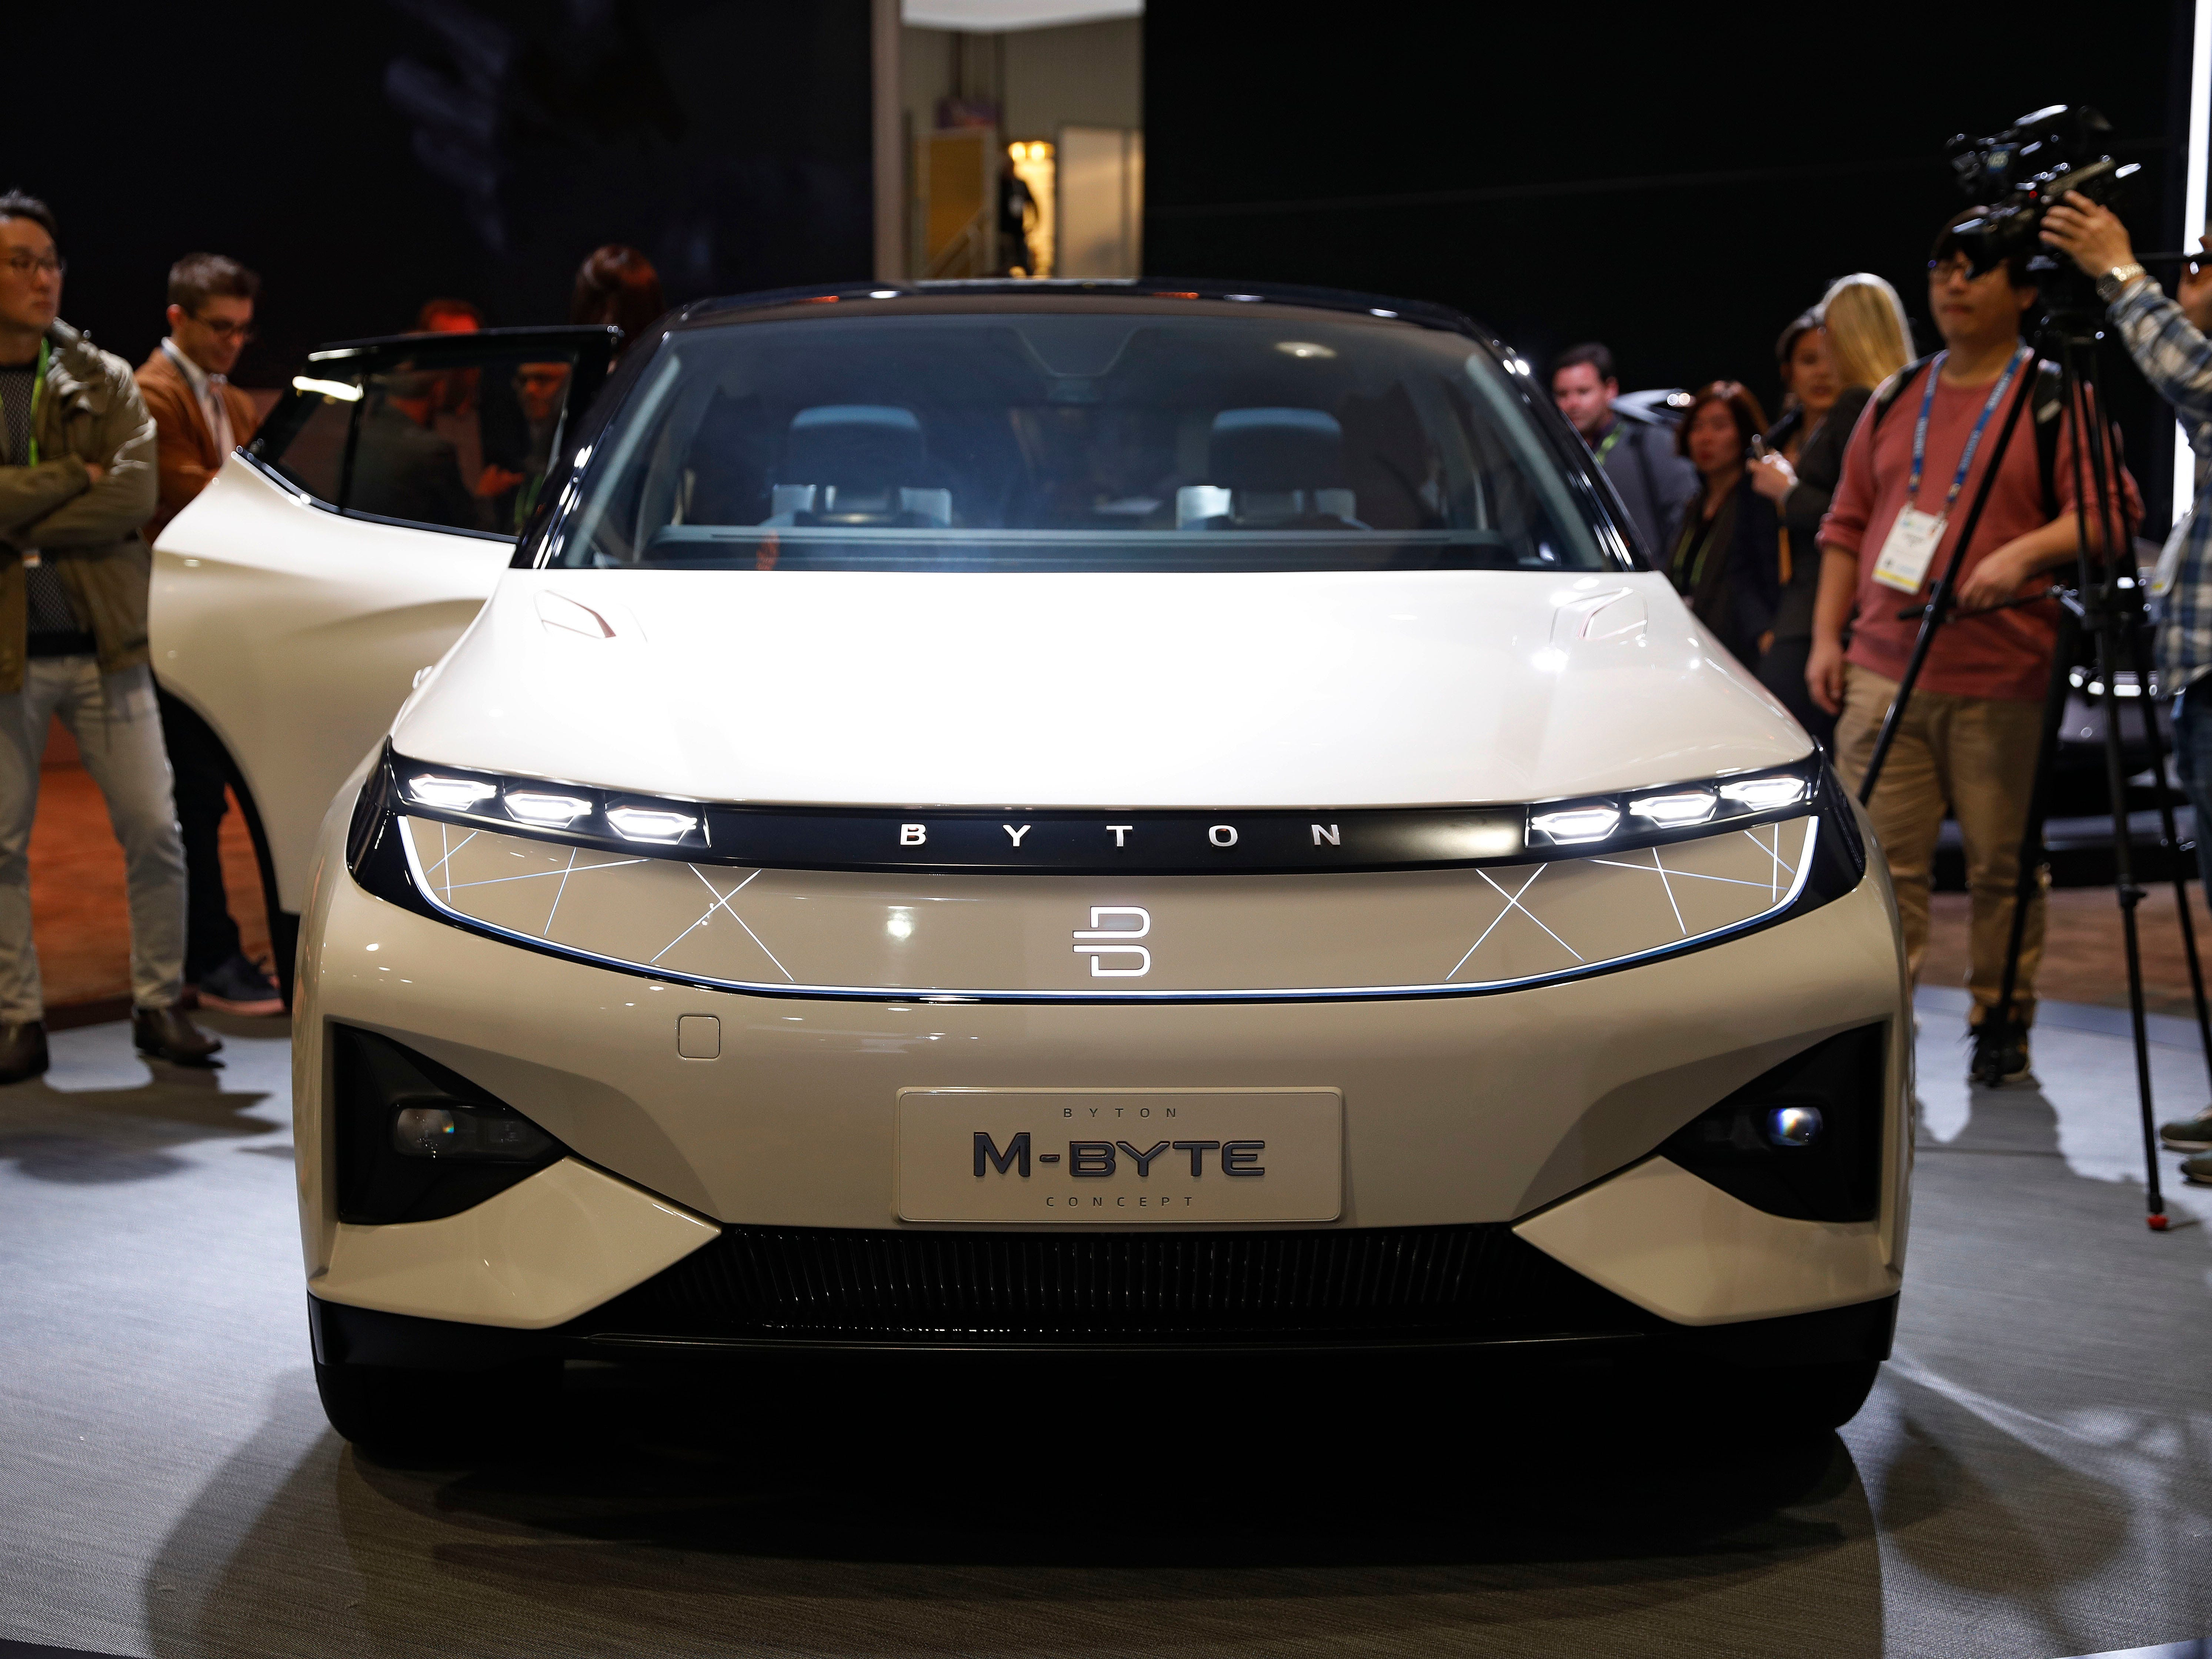 The Byton M-Byte SUV.